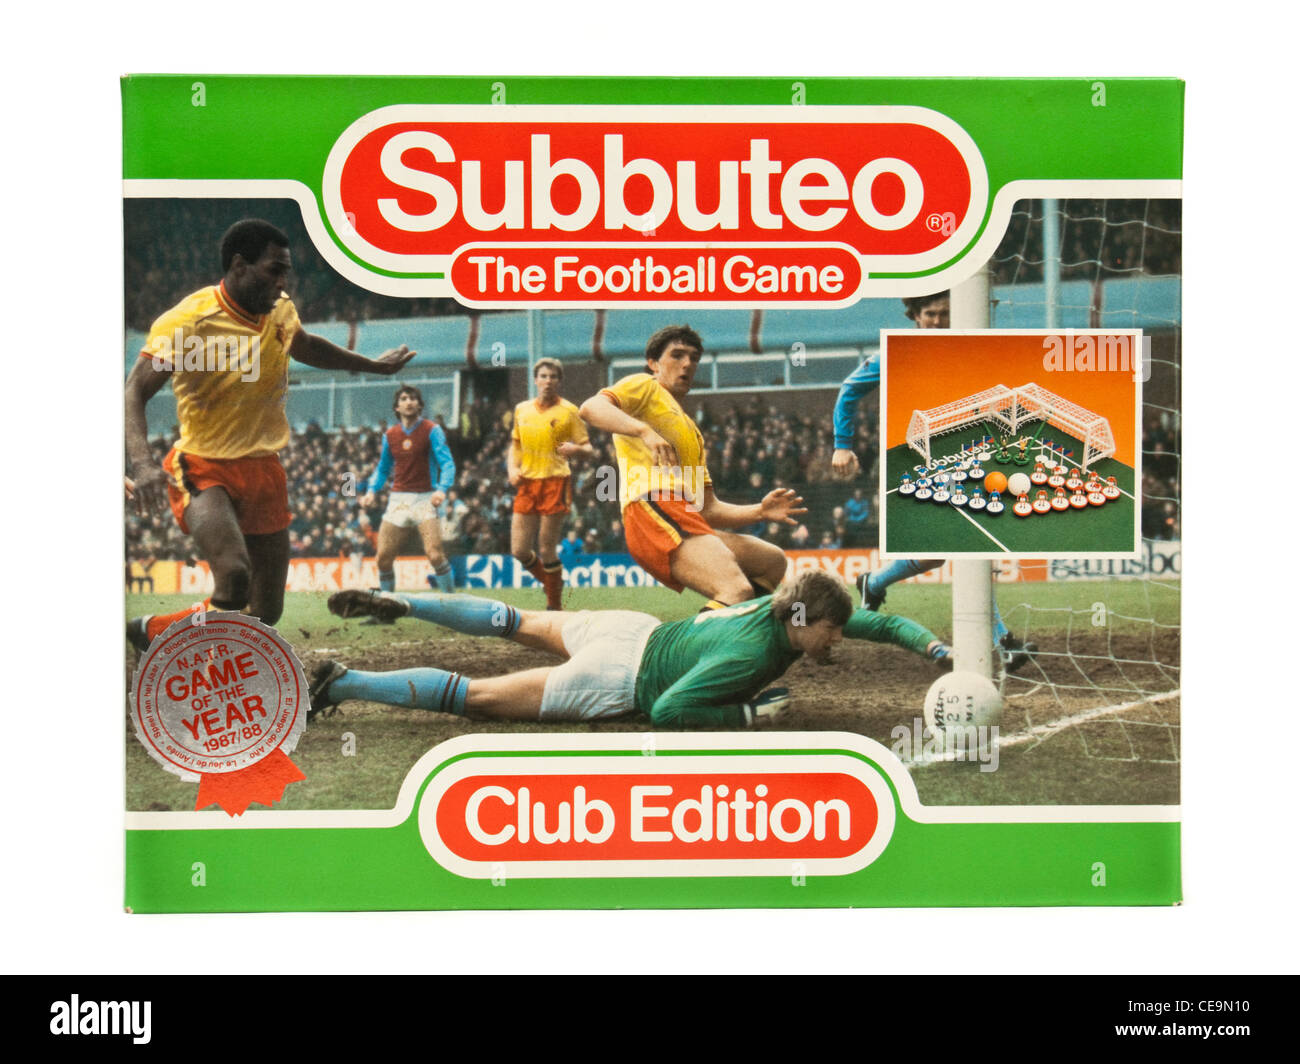 Vintage 1980's Subbuteo 'Club Edition' football game - Stock Image